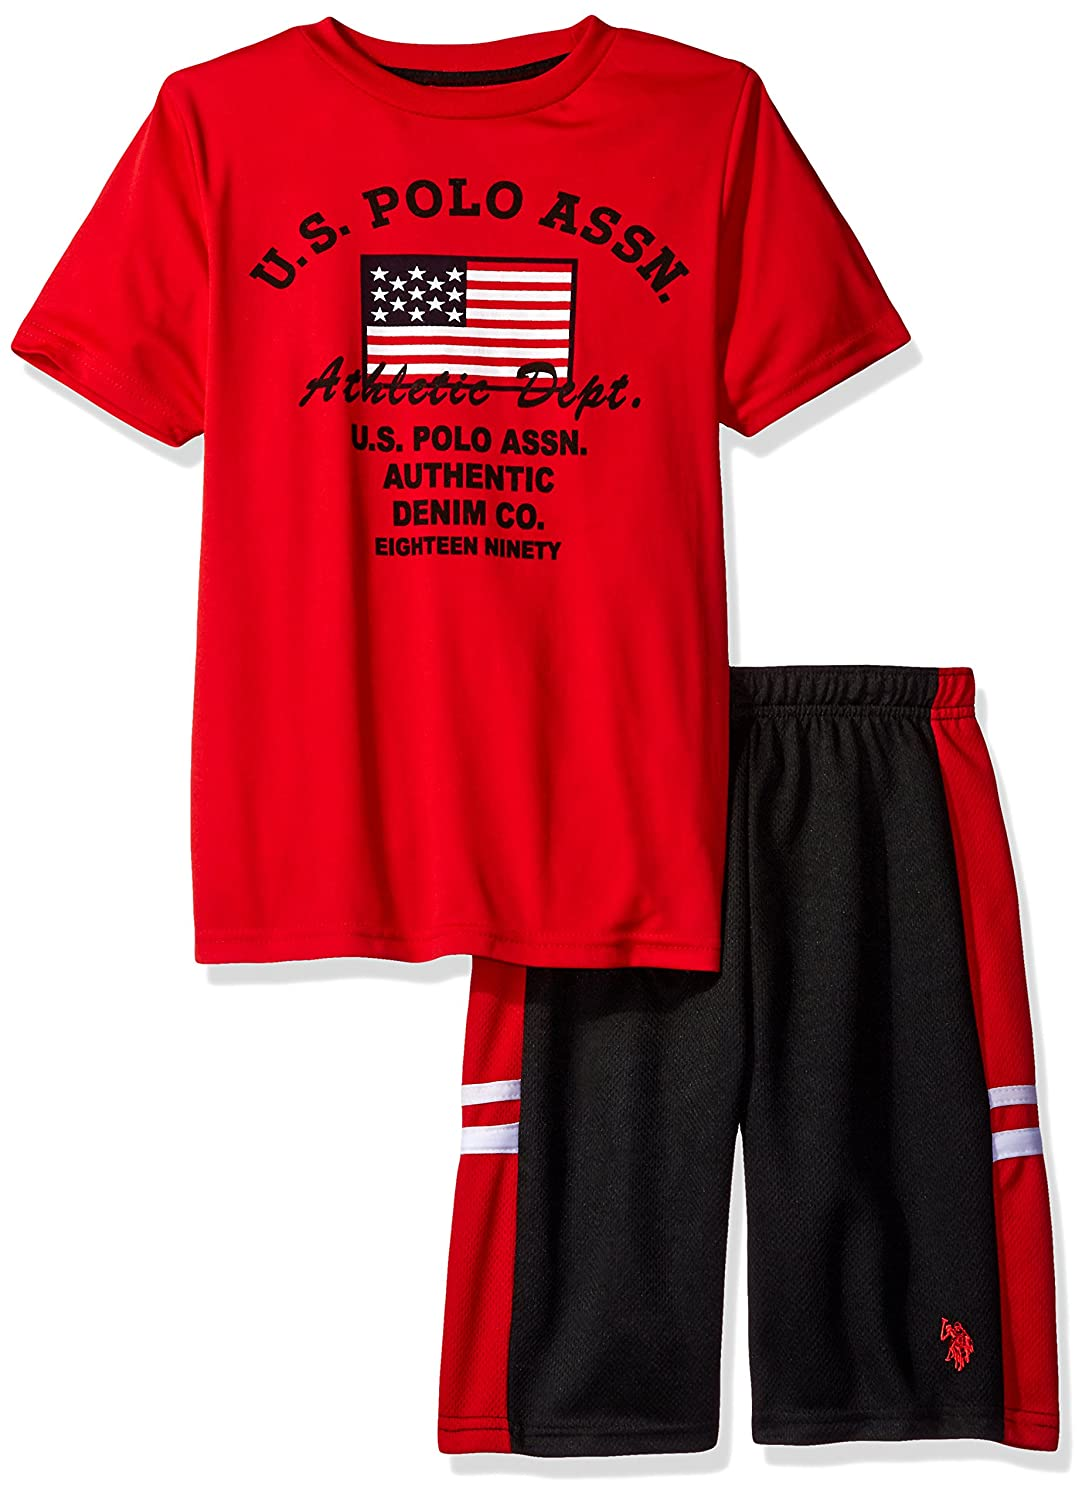 U.S. Polo Assn. Boys' Interlock Graphic T-Shirt with Close Hole Mesh Sport Short 0512